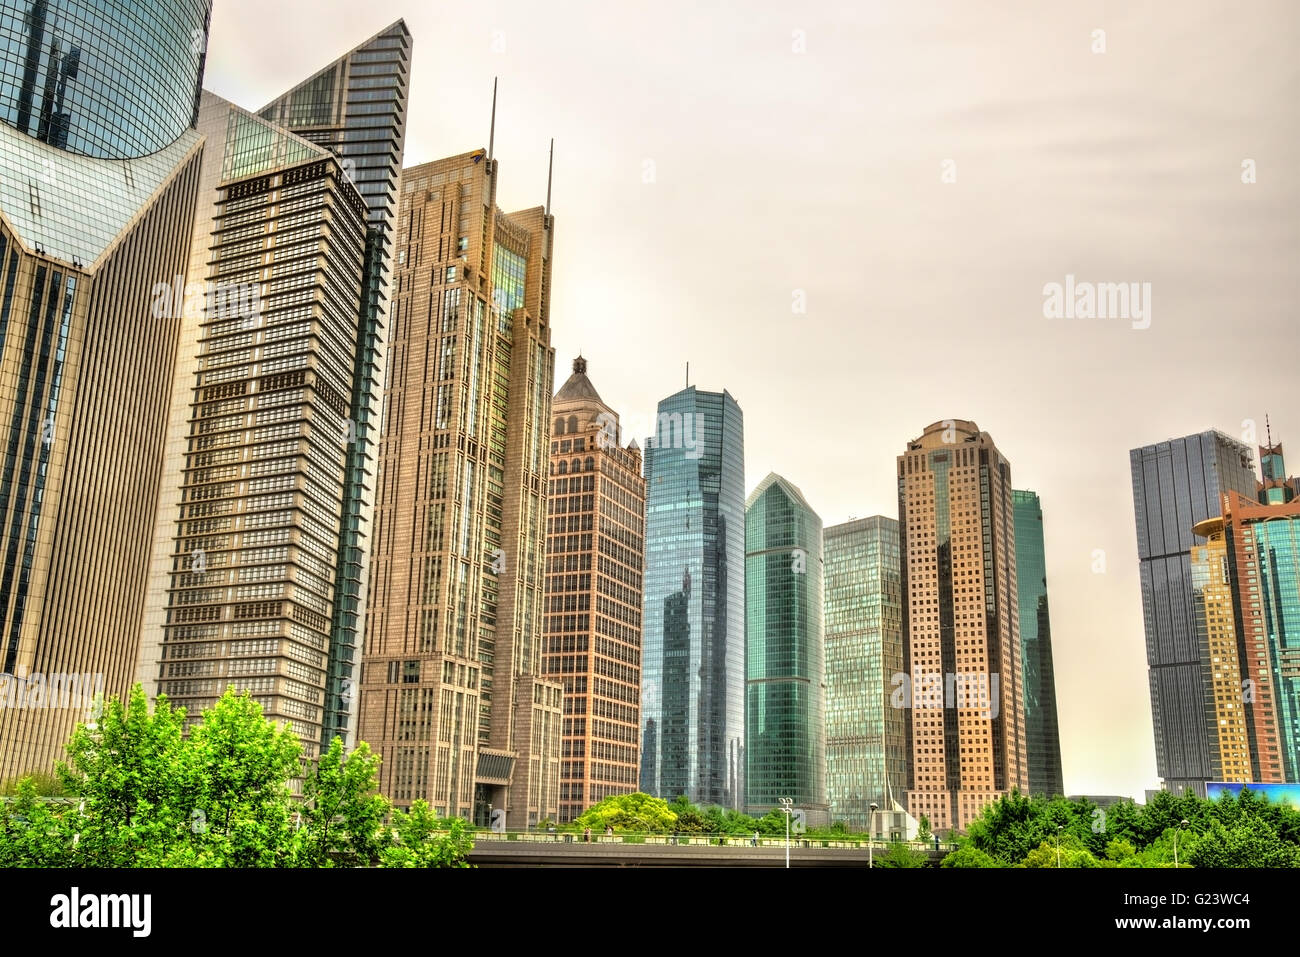 Shanghai skyscrapers at Lujiazui Financial District - Stock Image